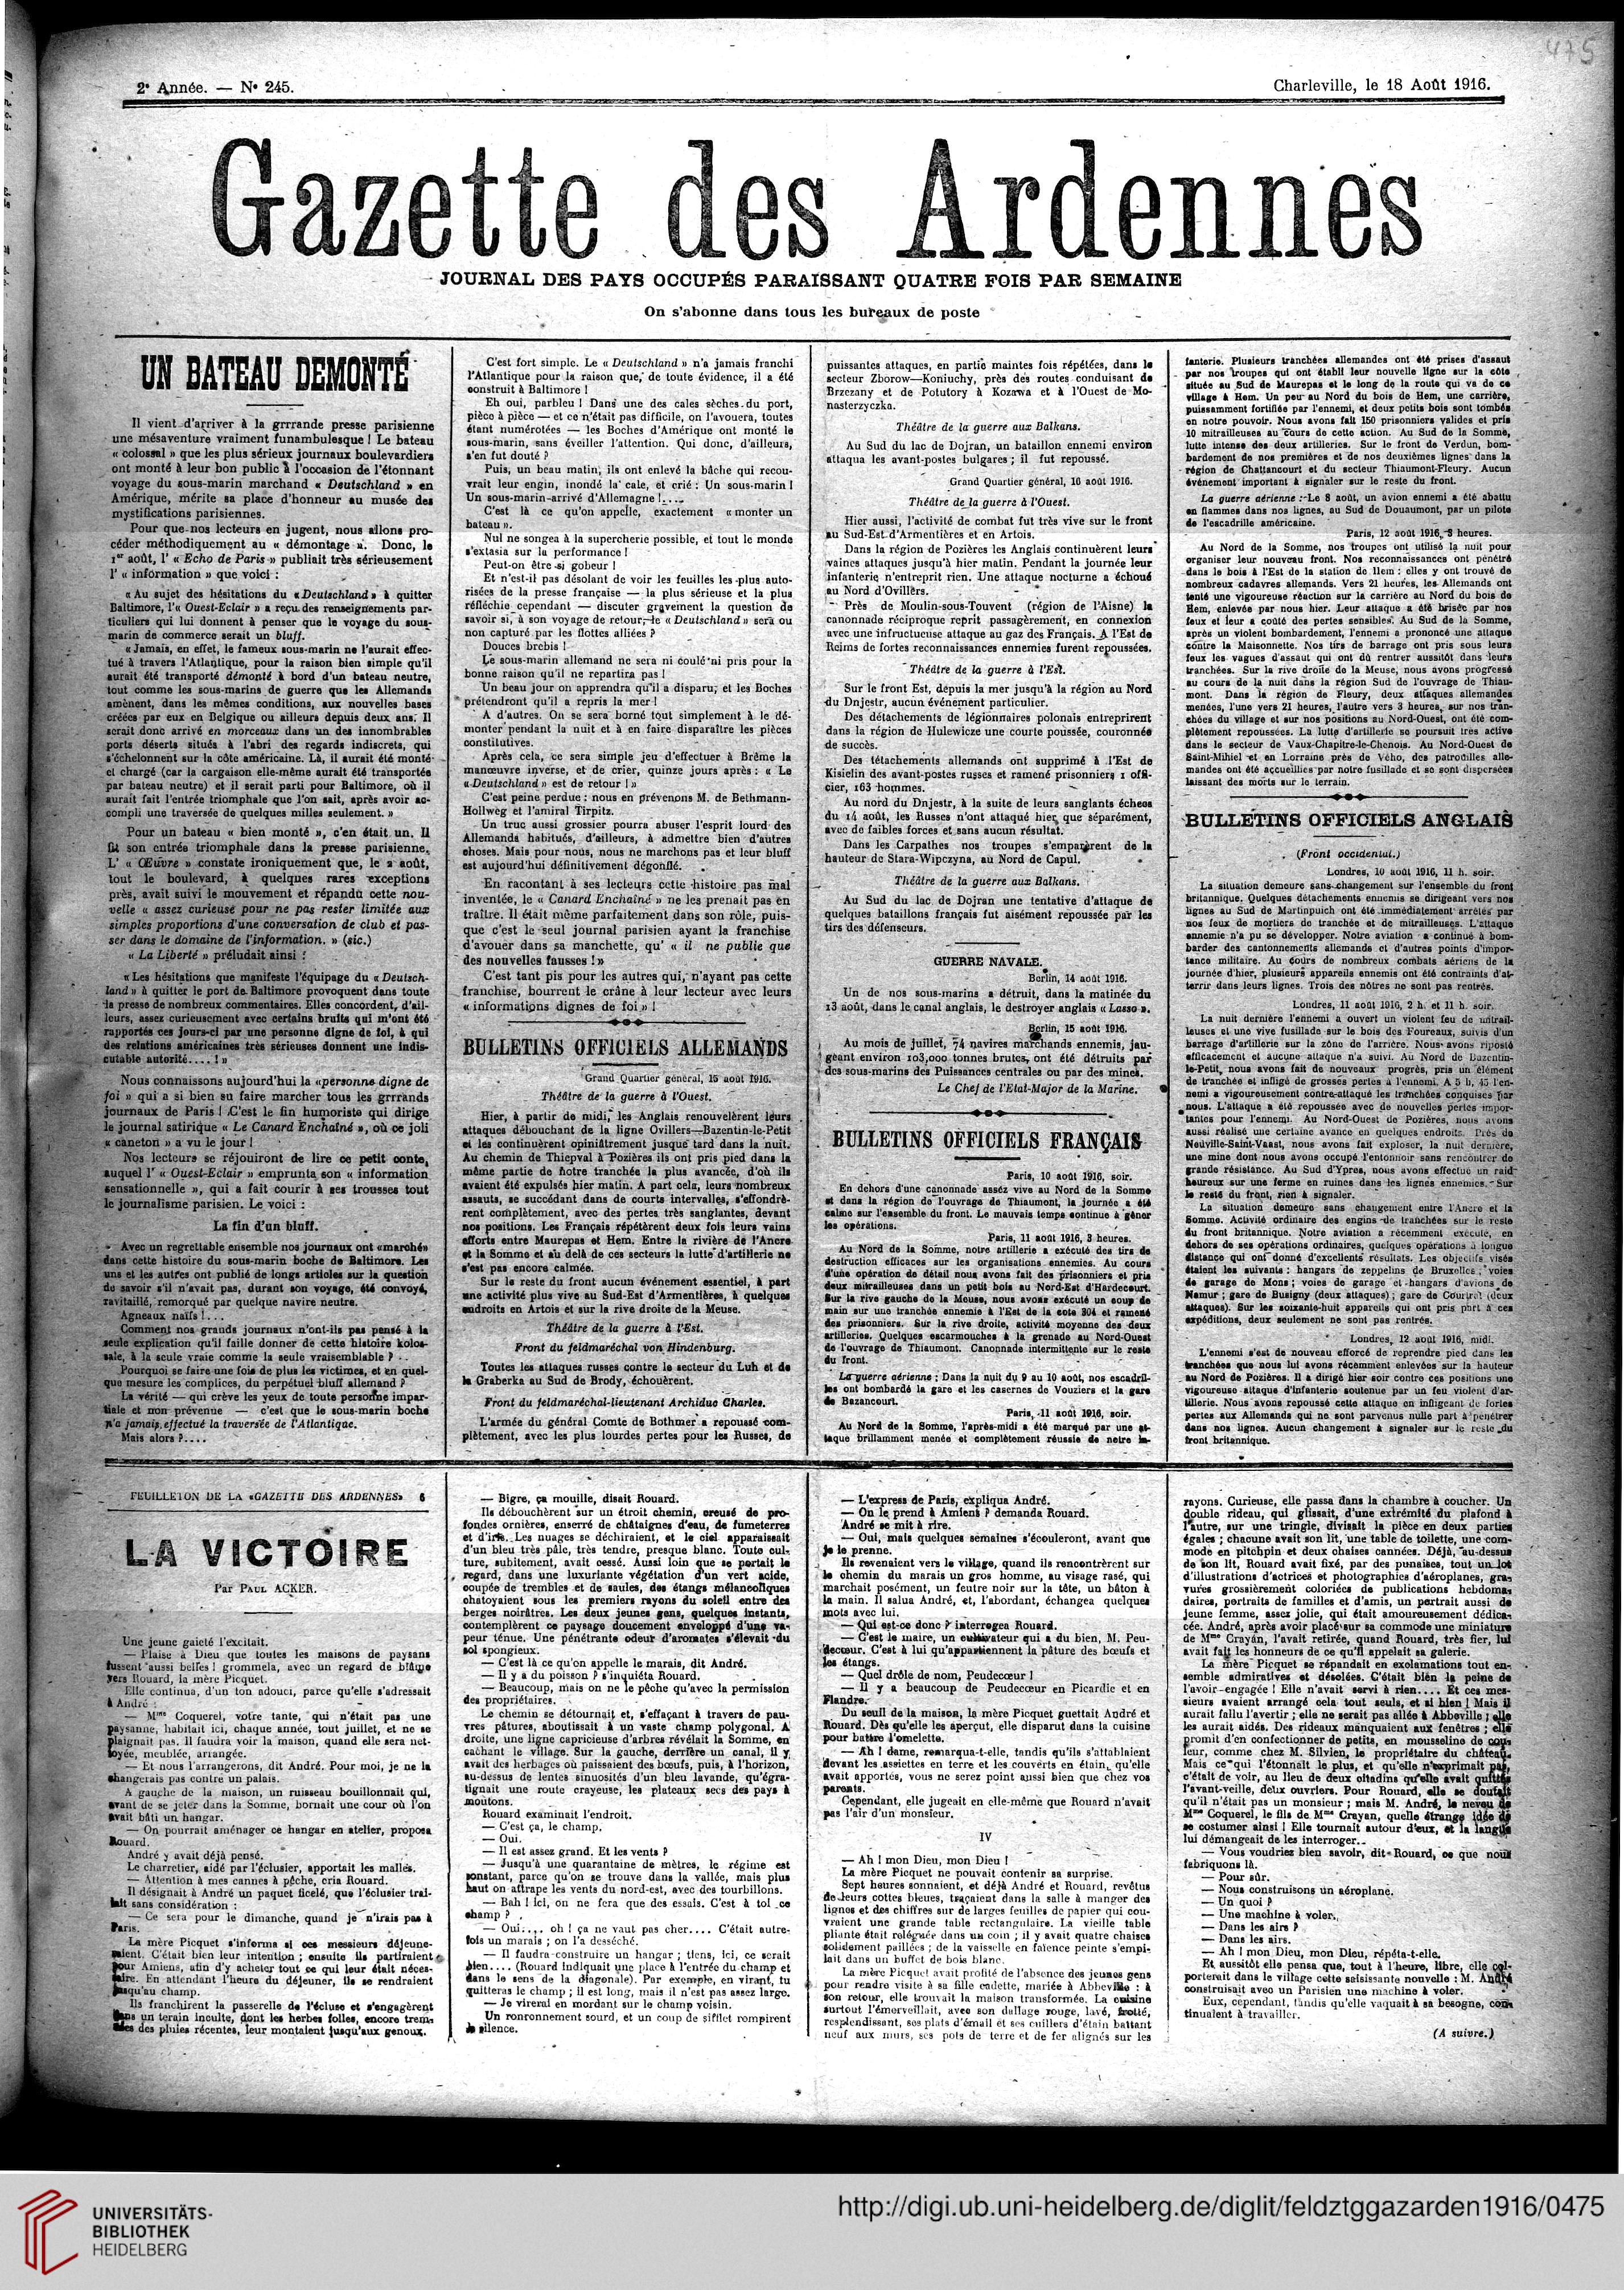 Gazette Des Ardennes Journal Pays Occupes Januar 1916